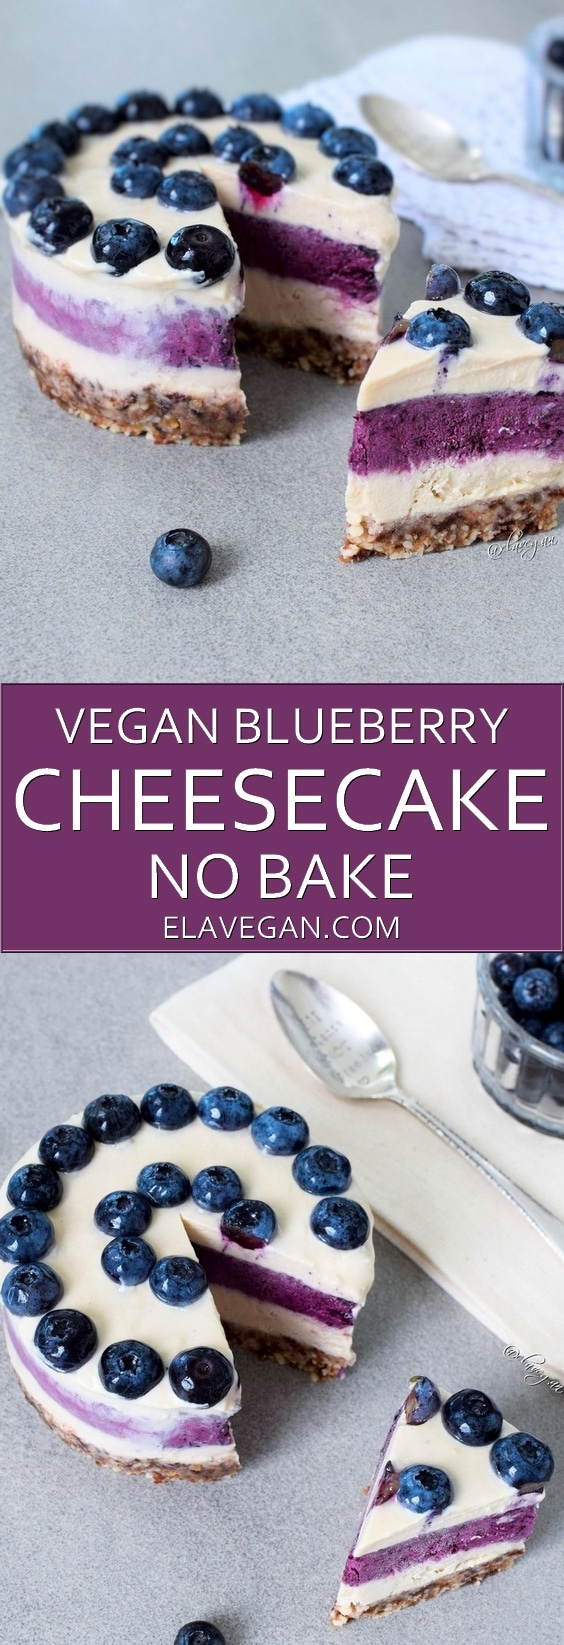 Raw (no-bake) vegan blueberry cheesecake recipe which is gluten-free